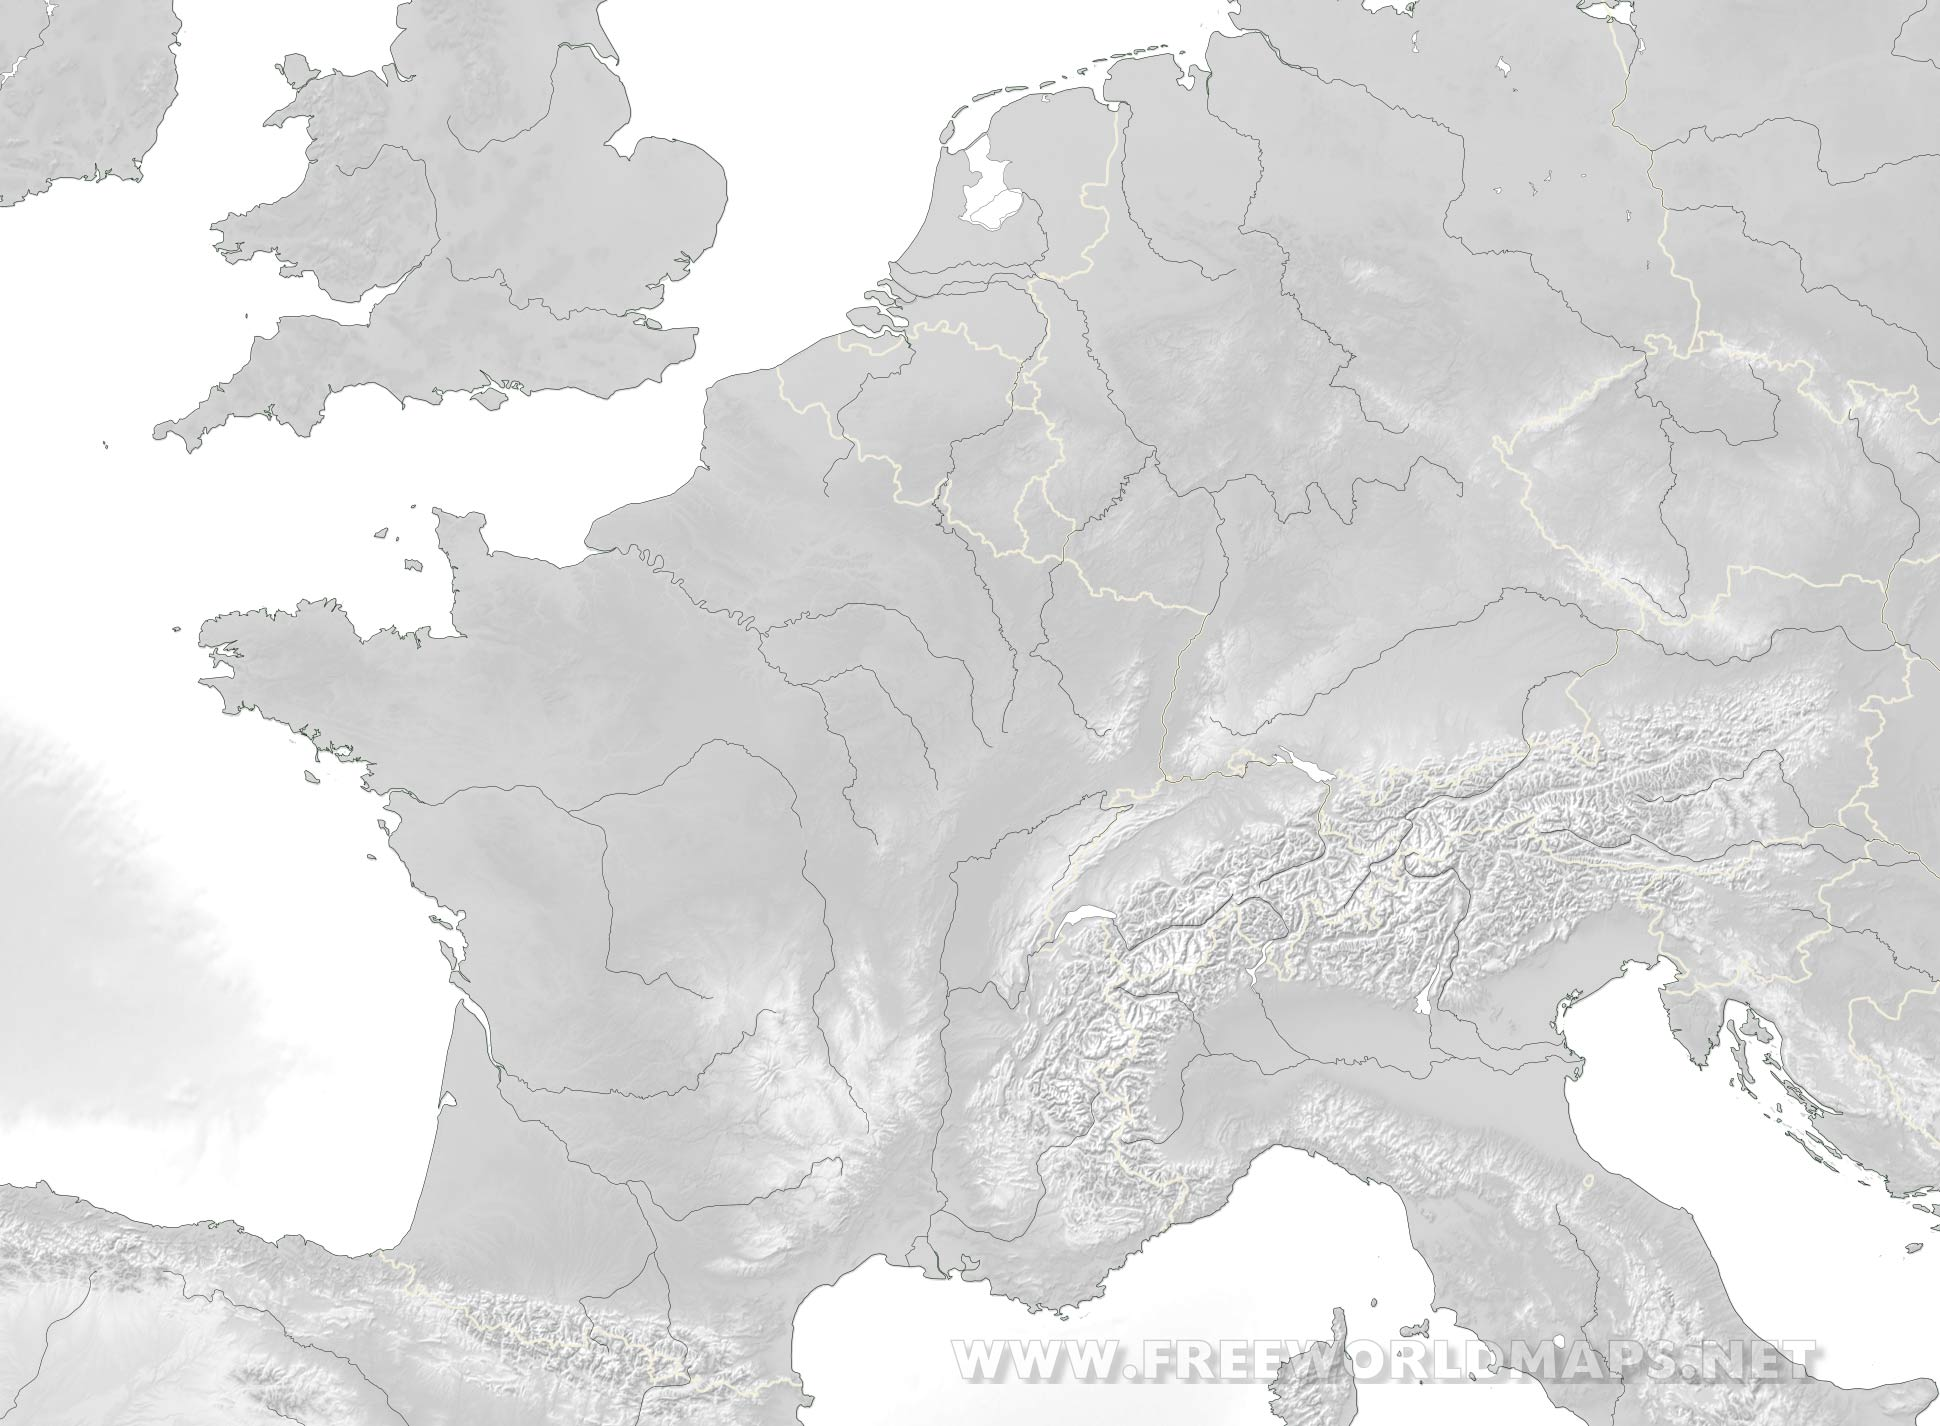 western europe map black and white Western Europe Physical Map